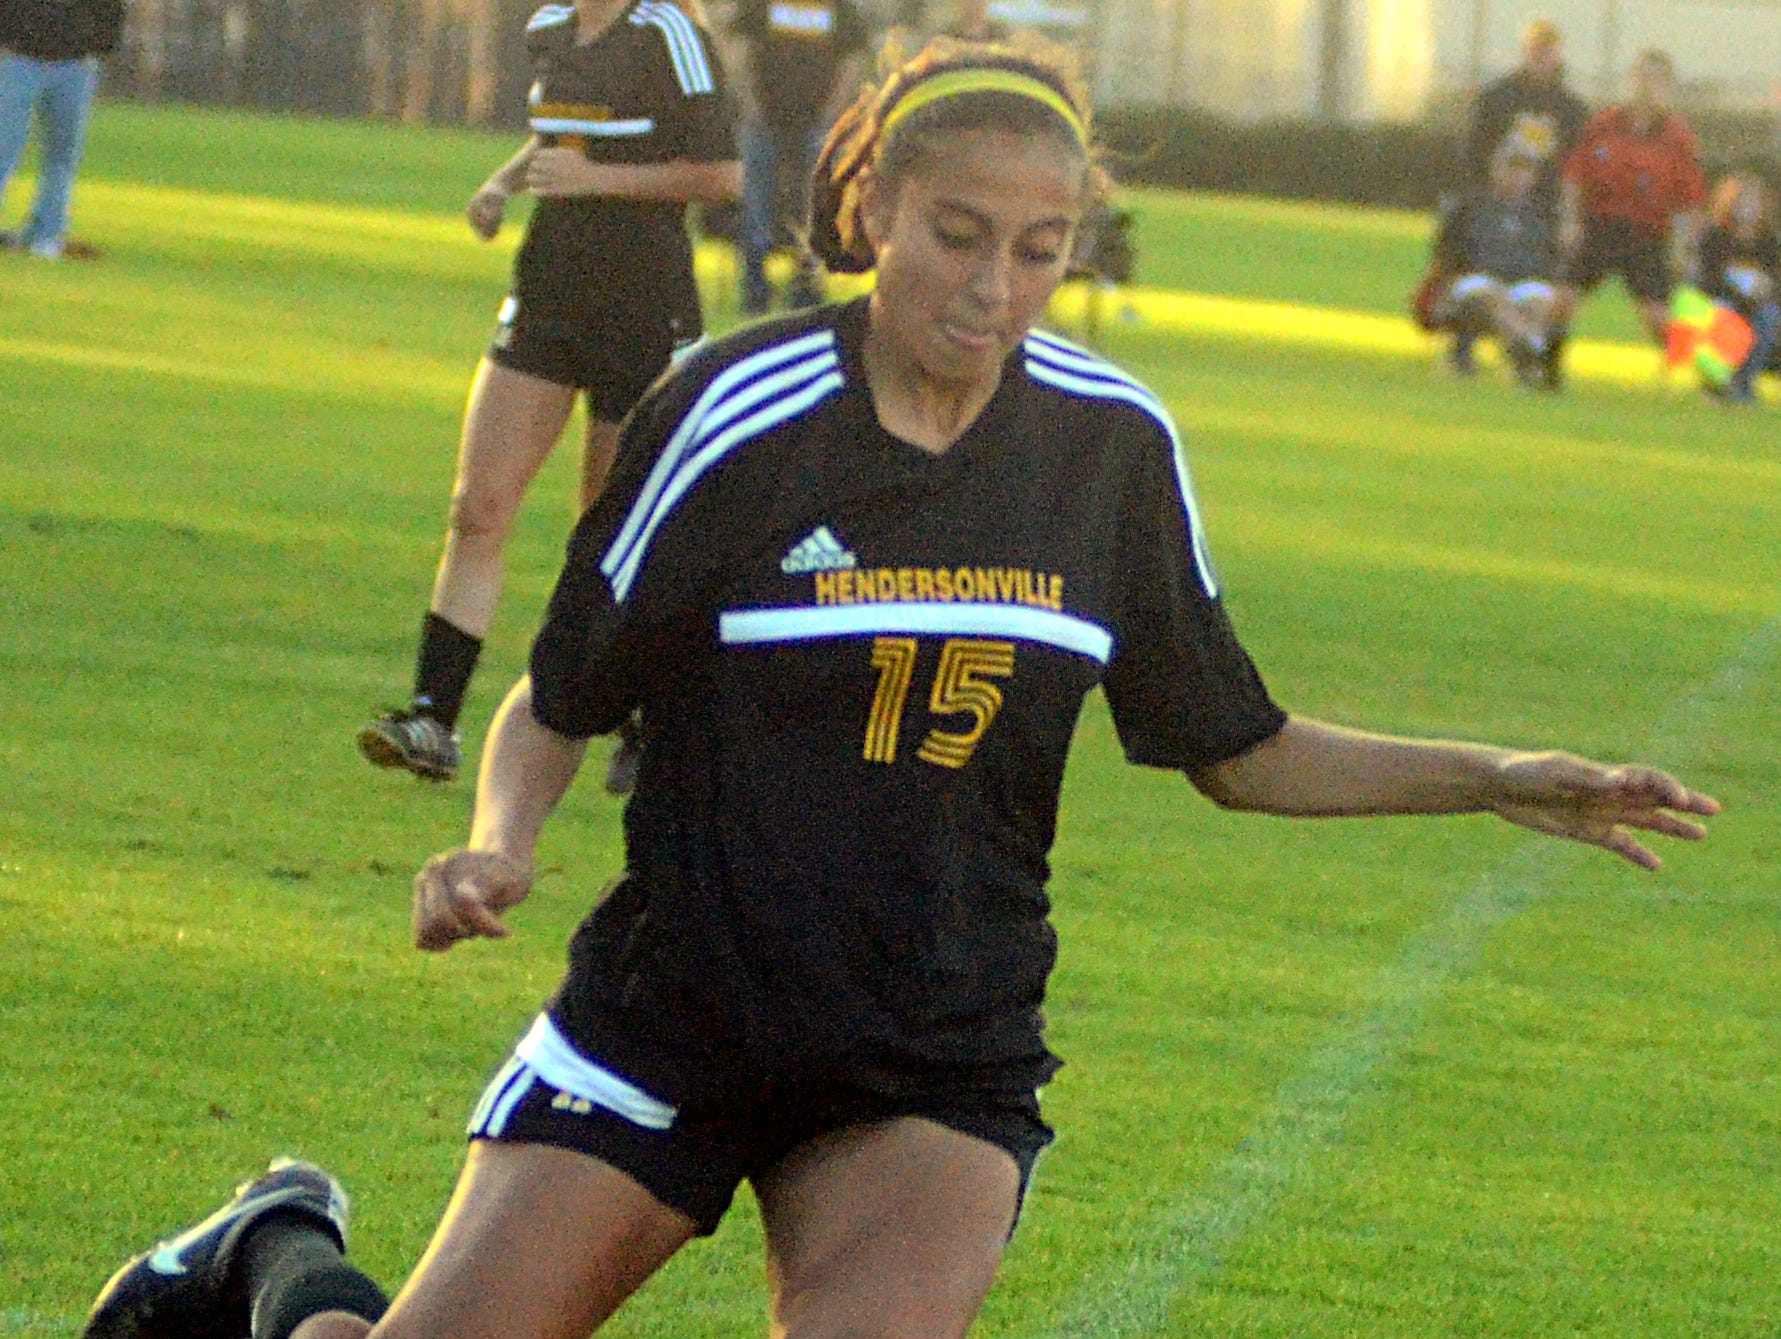 Hendersonville High junior Claire Almaraz clears the ball from her own end during first-half action.